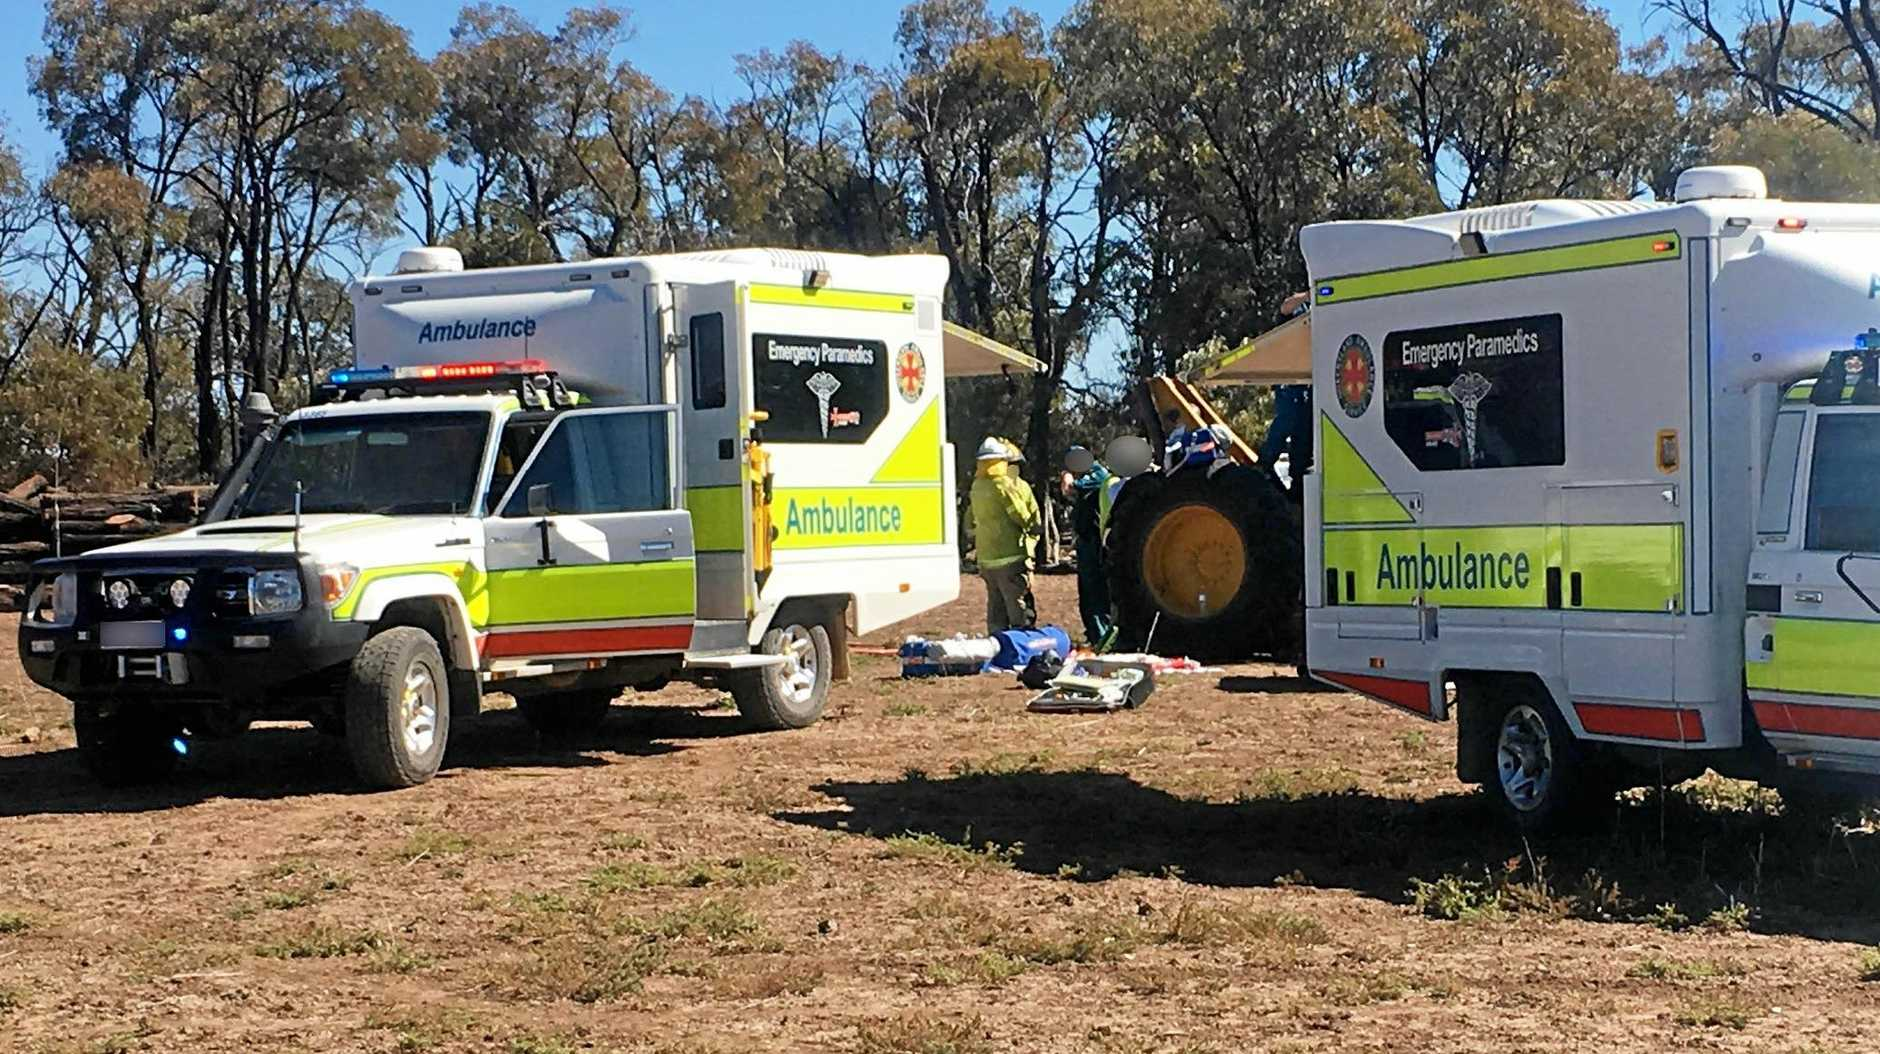 FREAK ACCIDENT: Ambulances were called to the scene of a freak work incident which resulted in a boy losing his leg.